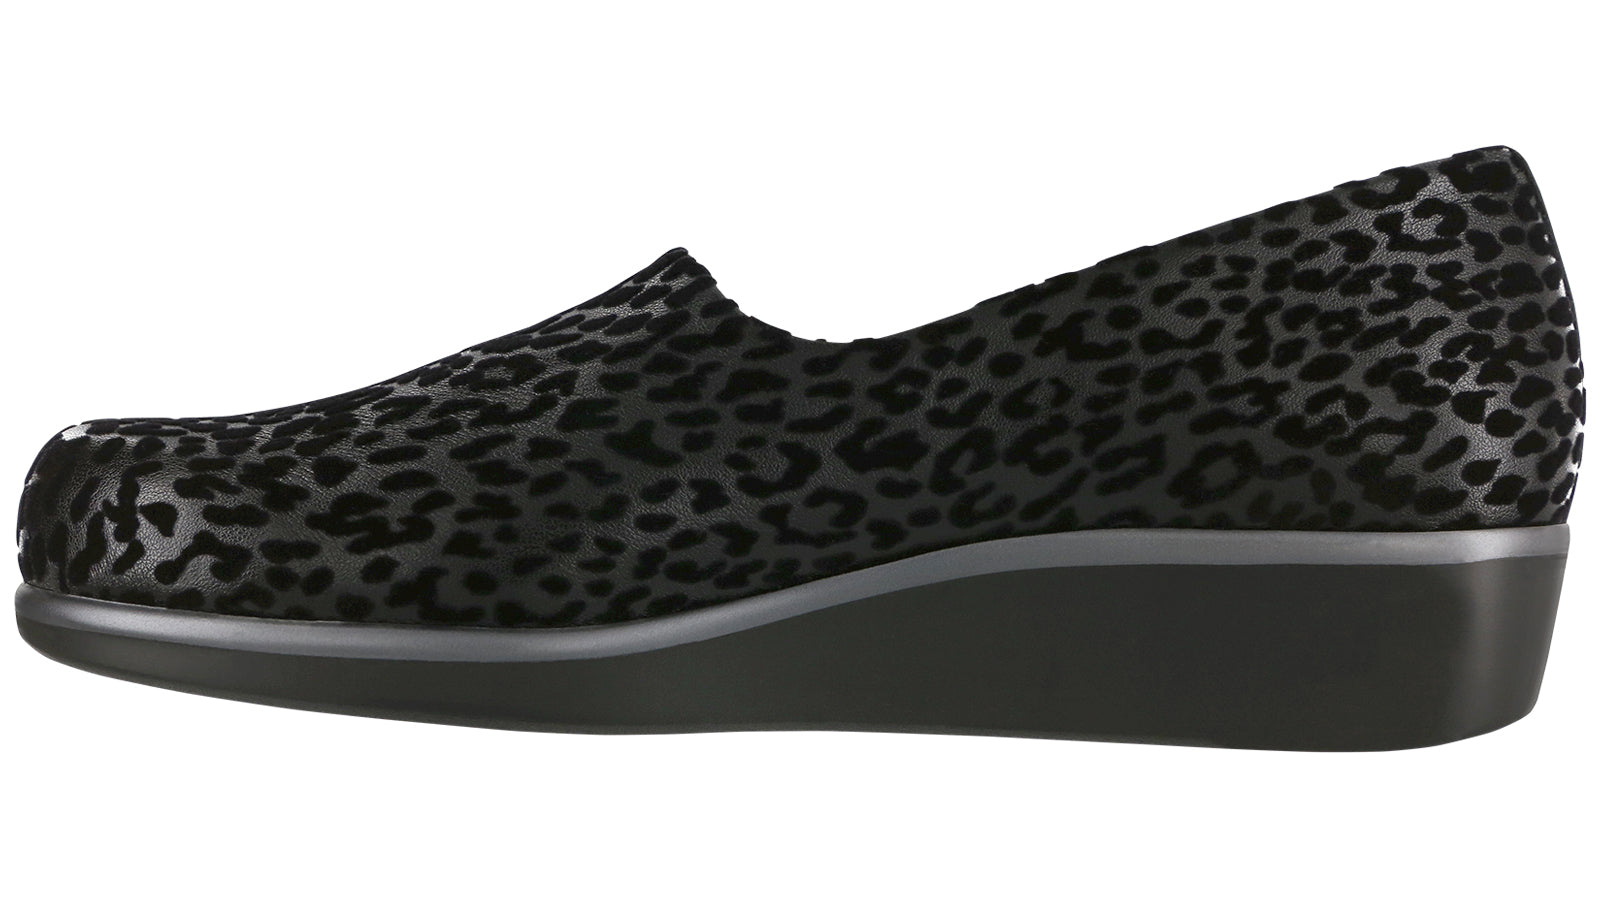 Women's Bliss - Black Leopard